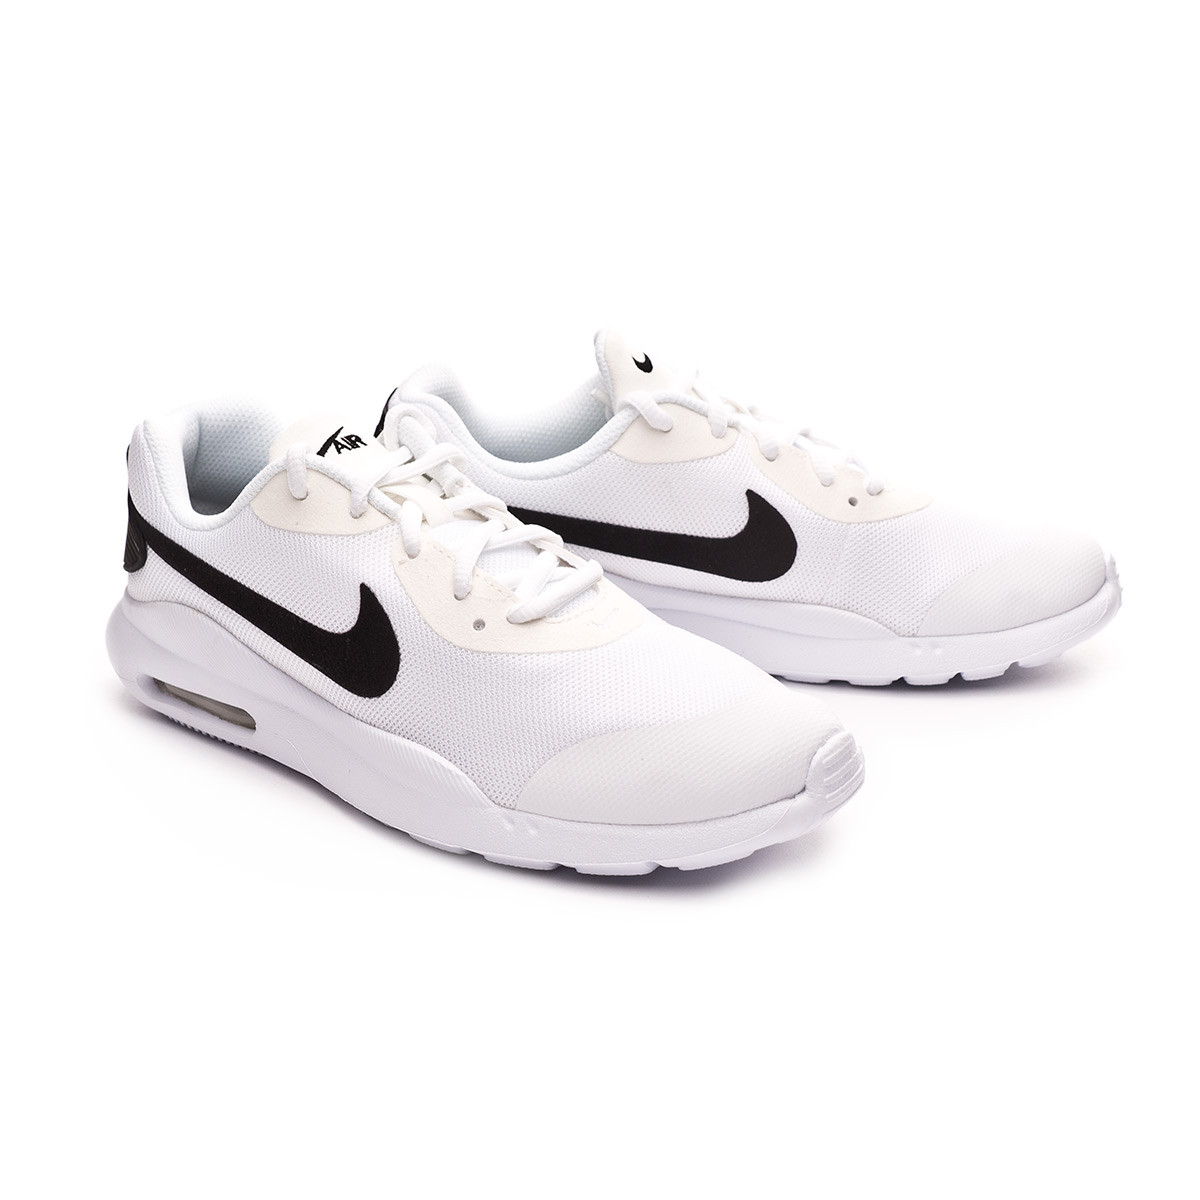 8bc7c6e859 Trainers Nike Kids Air Max Oketo GS White-Black - Football store Fútbol  Emotion